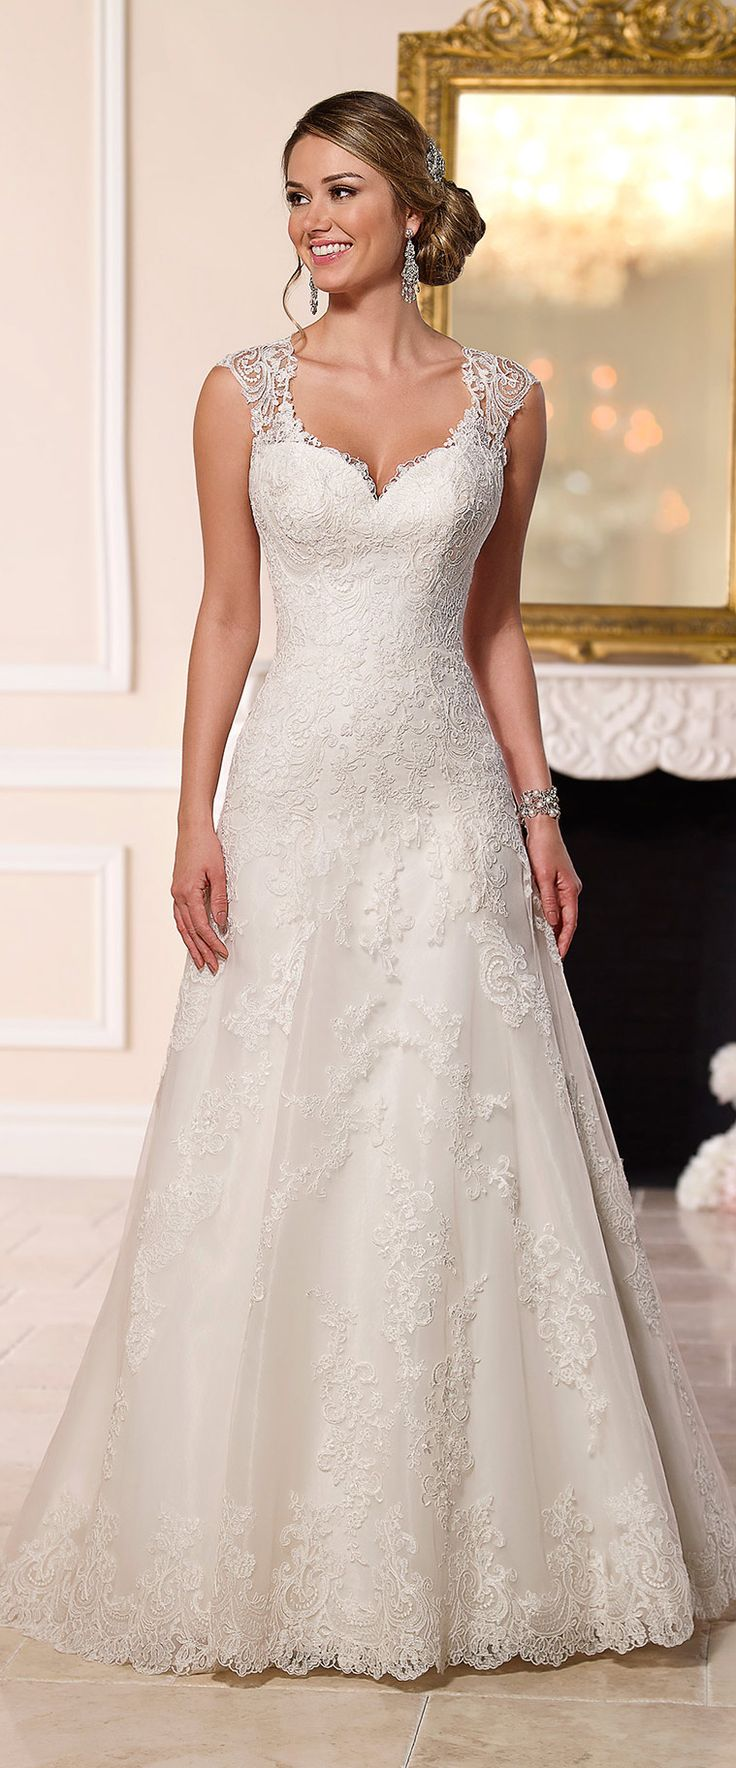 Stella York A-line lace wedding dress 2016